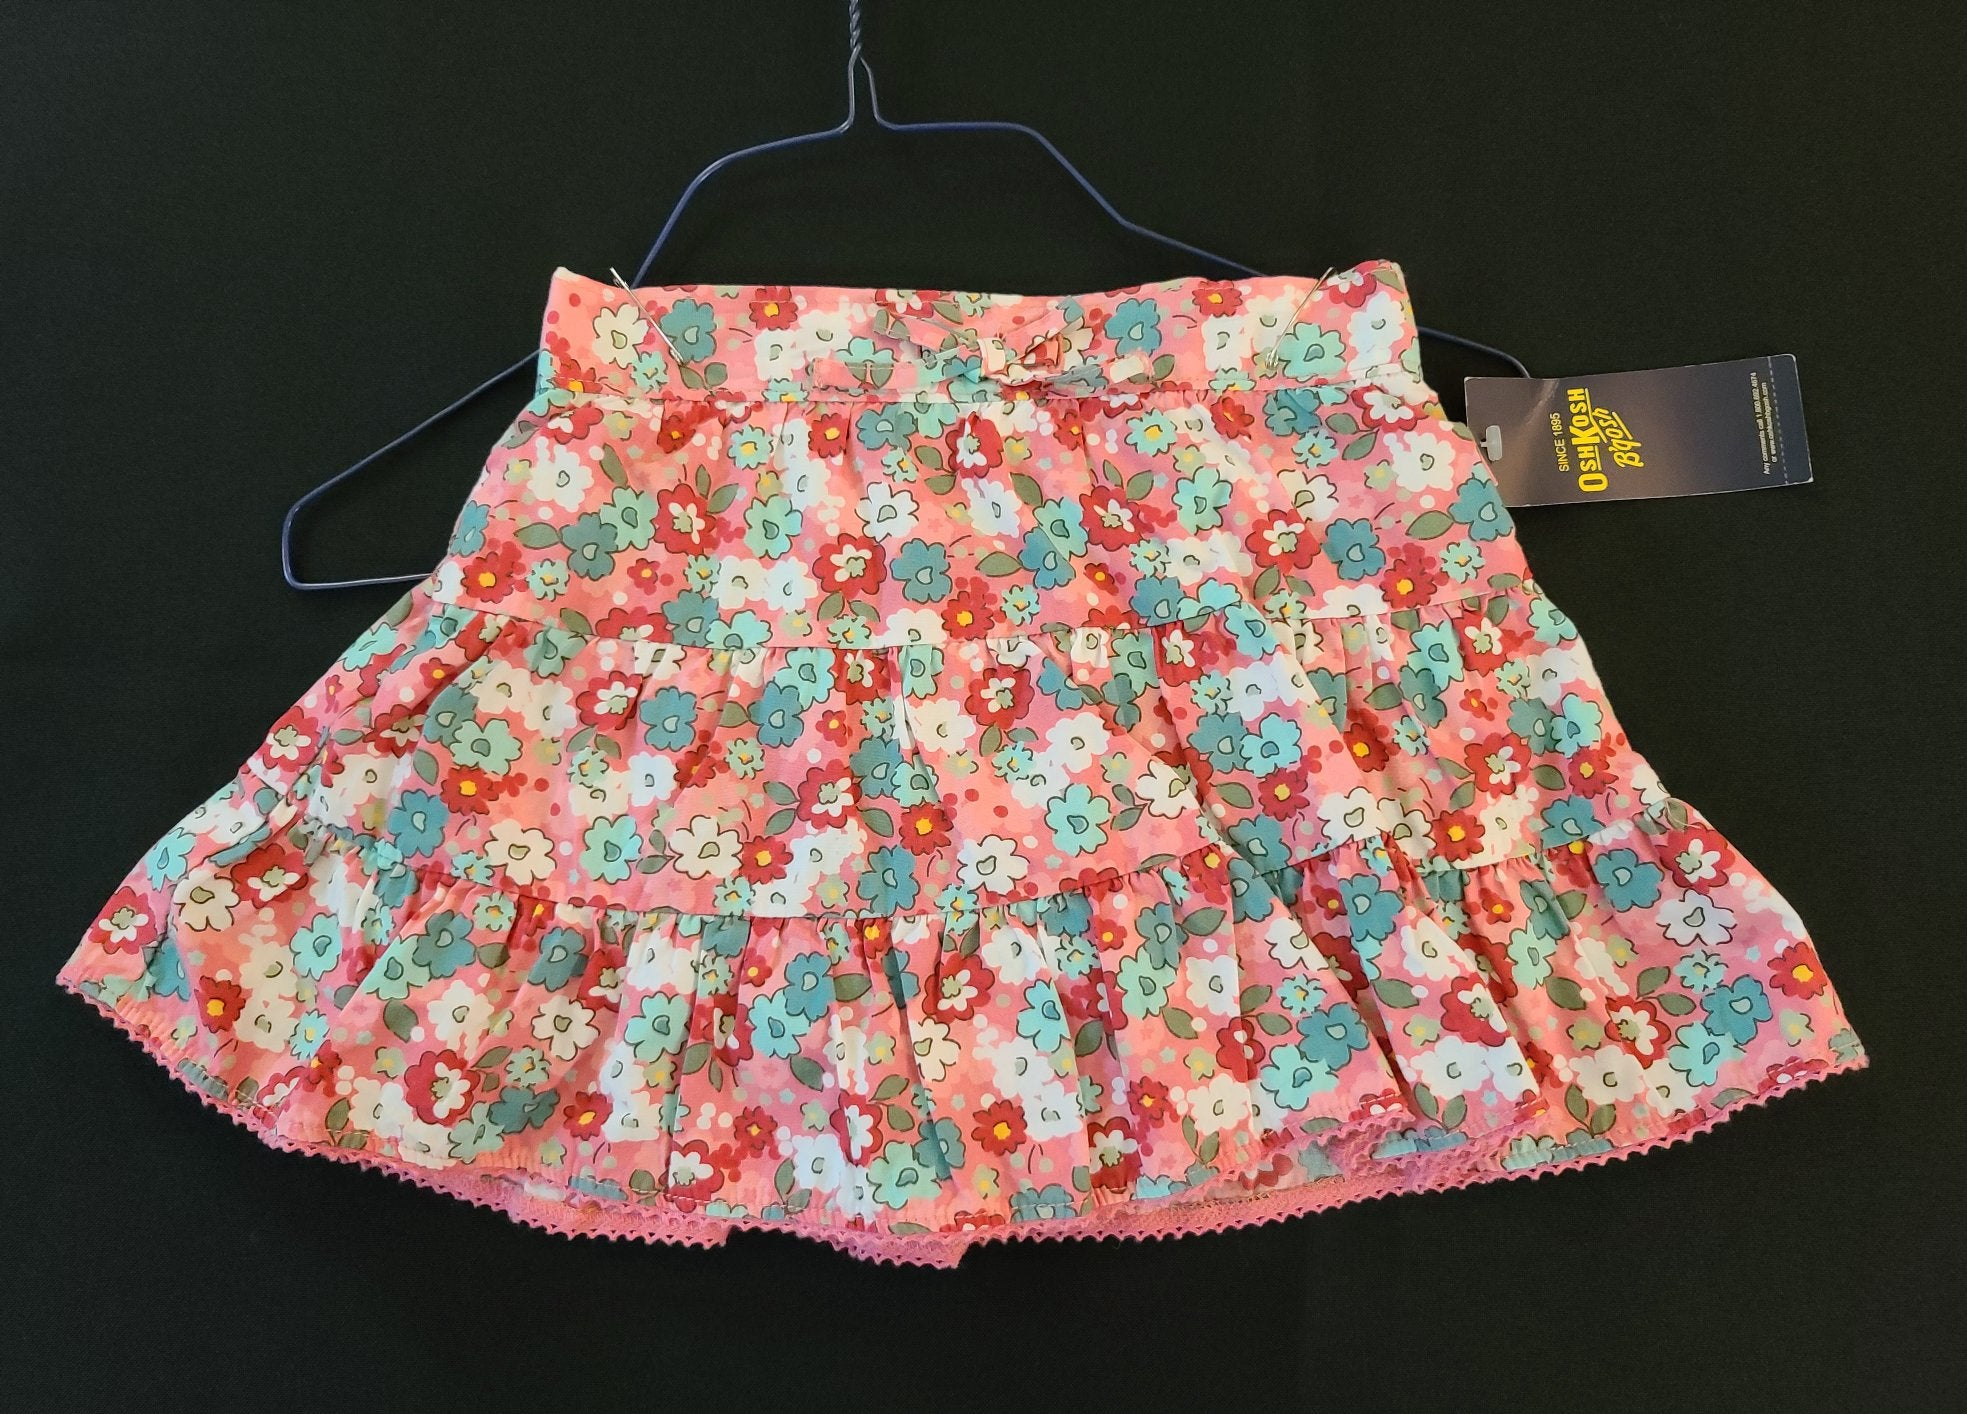 *NWT* OSHKOSH skirt; Girls Size 24 months